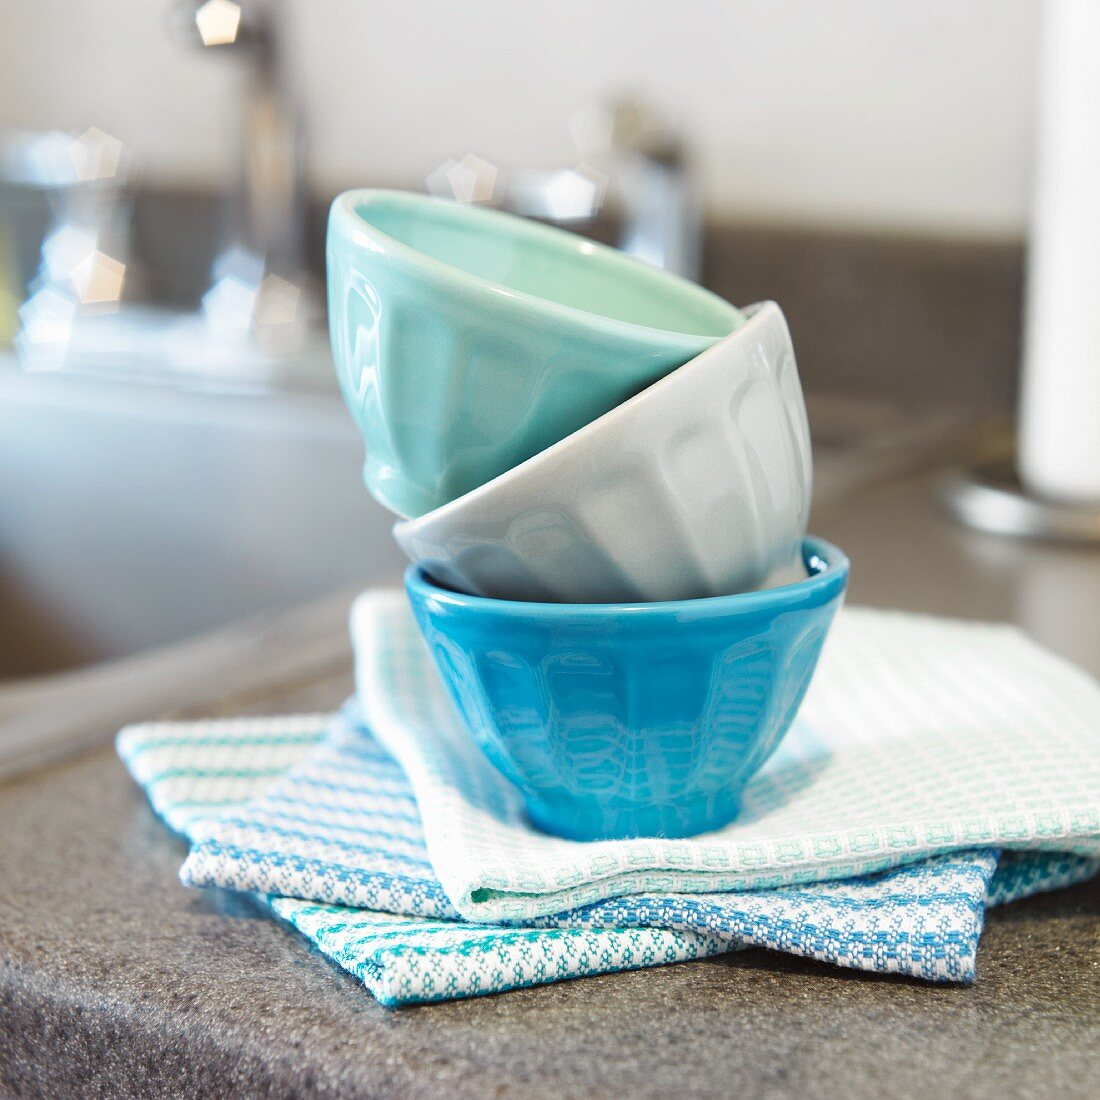 Small Prep Bowls Stacked on Kitchen Towels on a Kitchen Counter